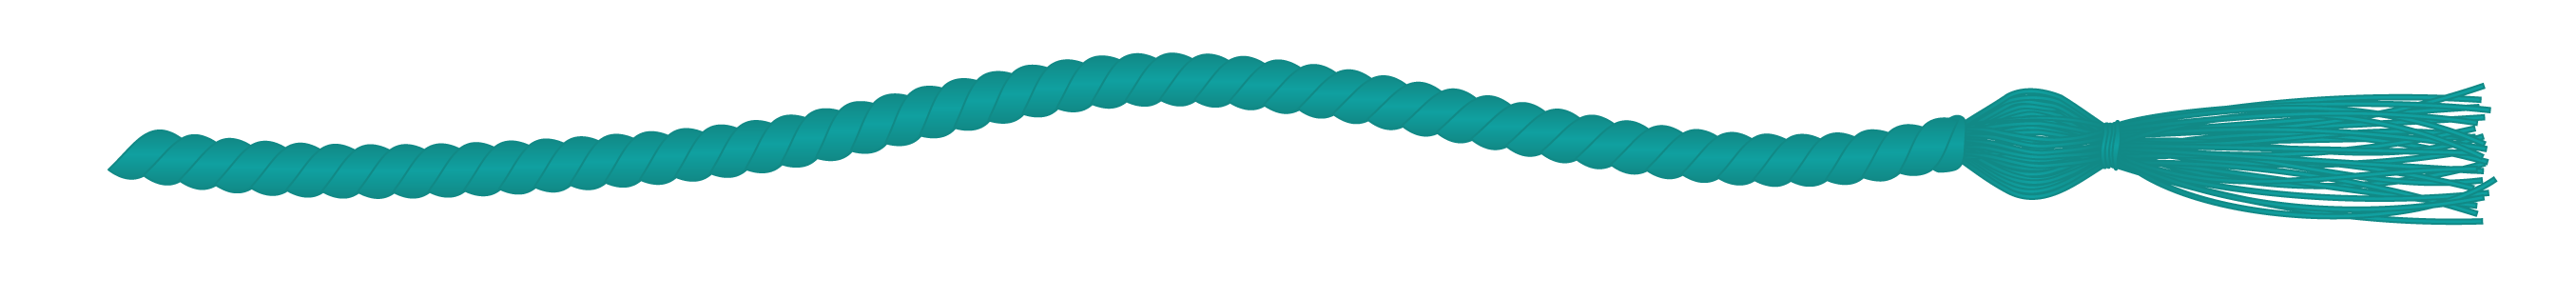 Teal commencement cord